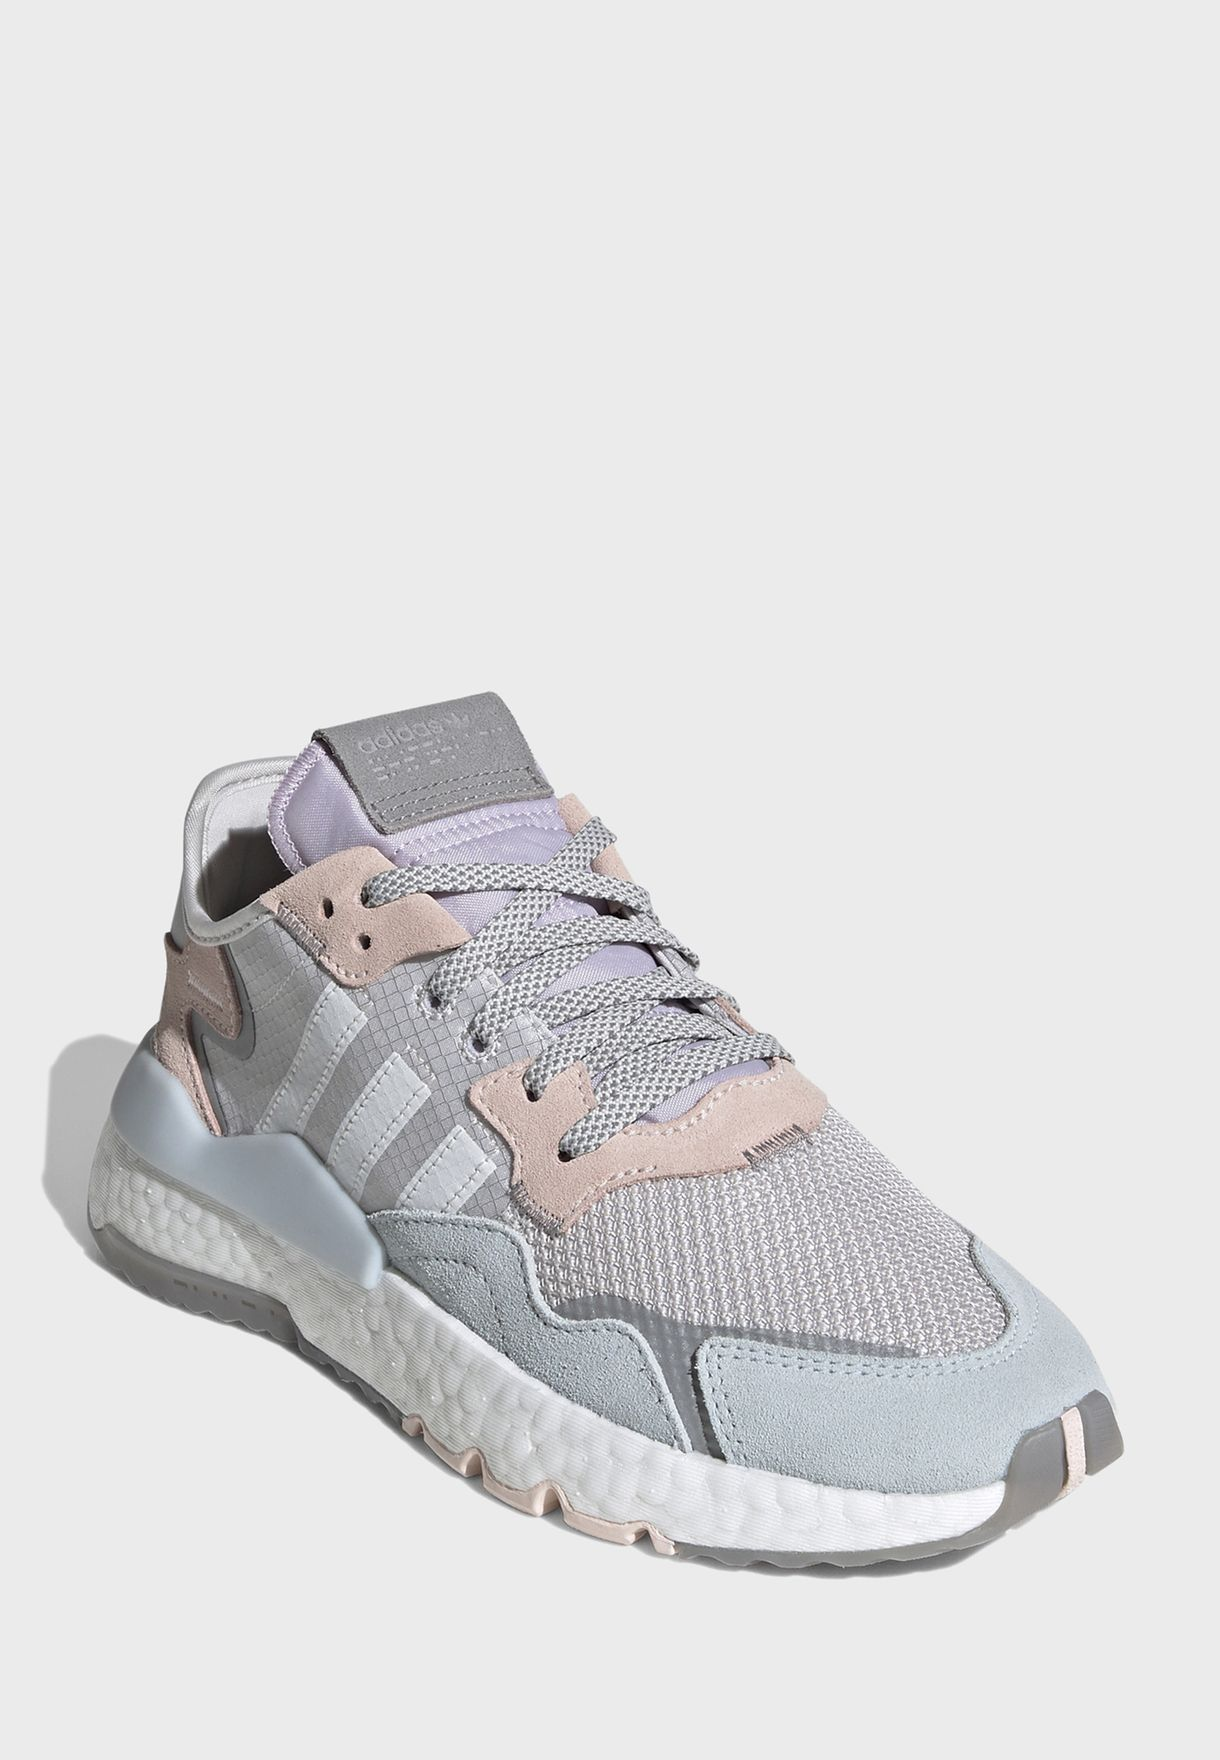 Nite Jogger Casual Women's Sneakers Shoes